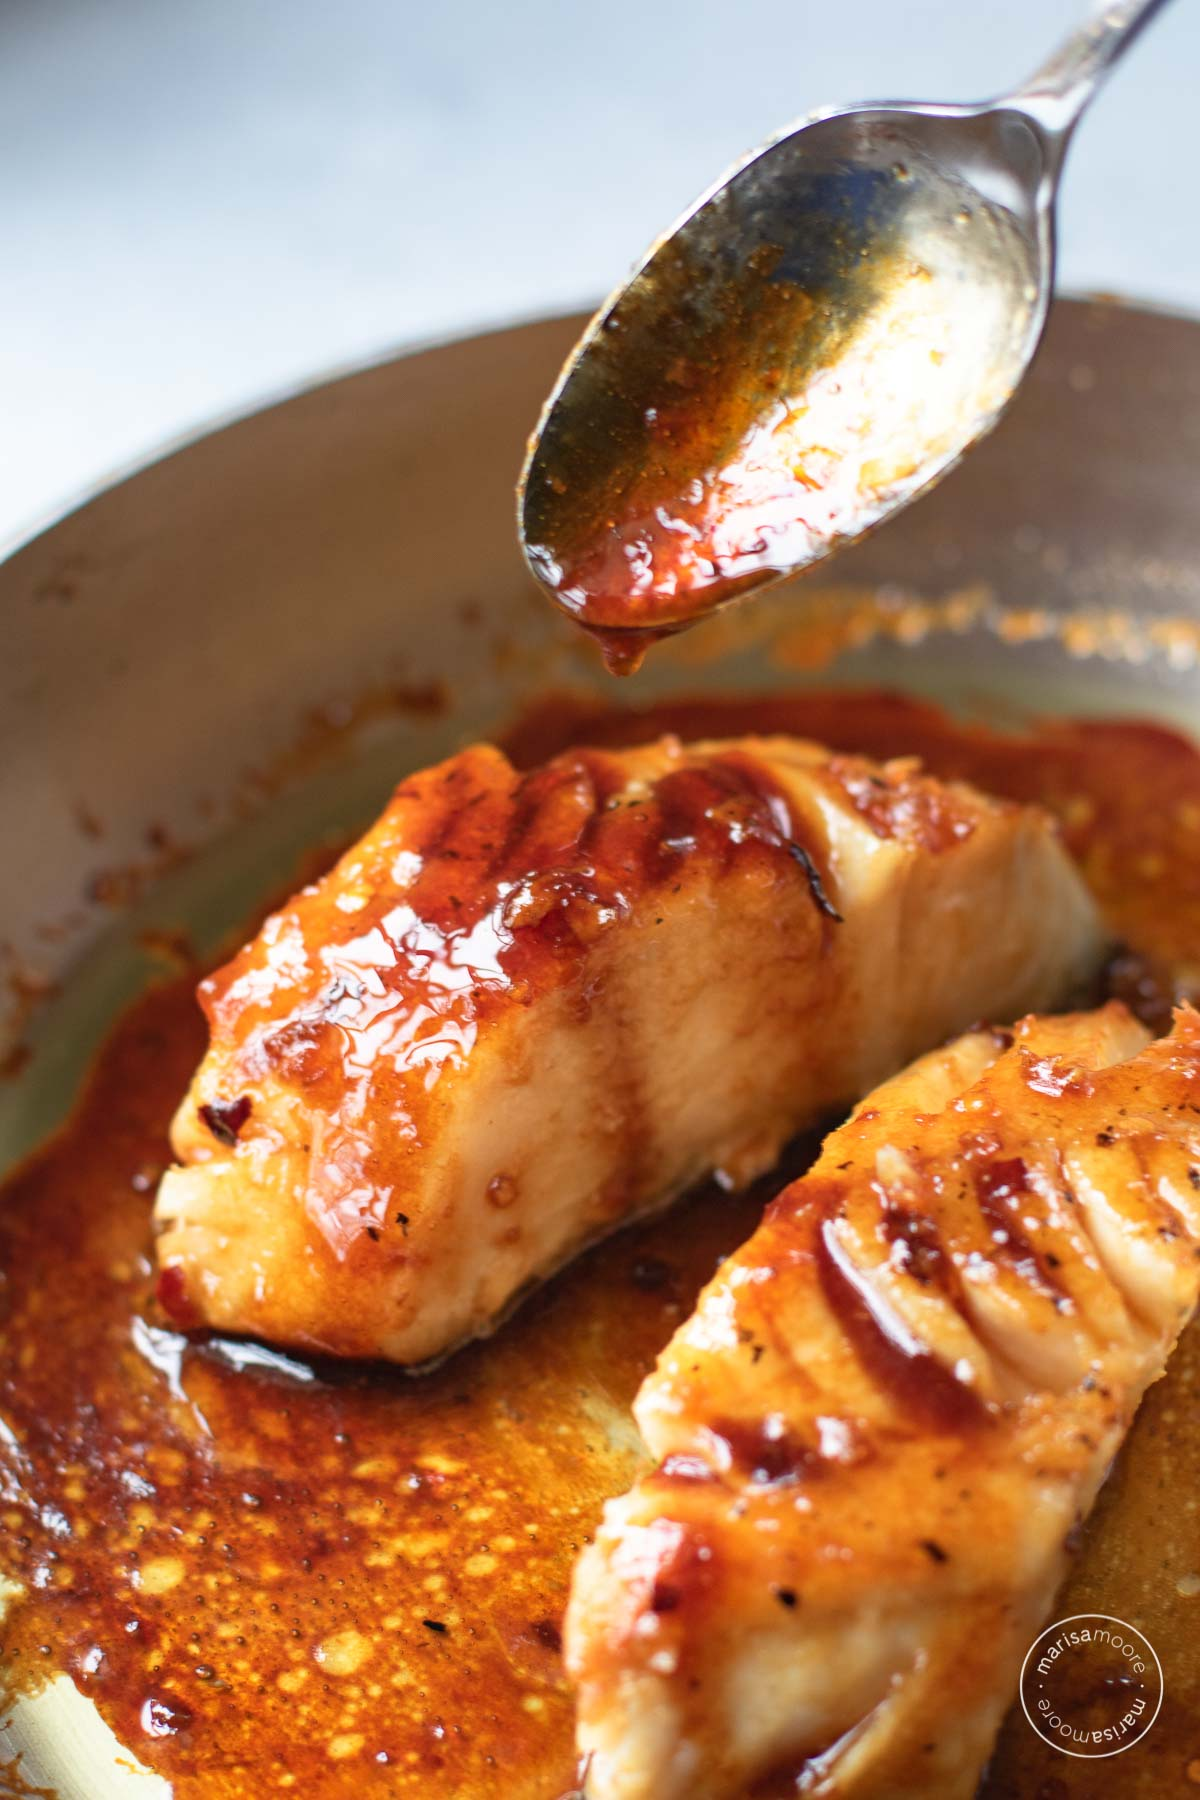 Close up of a spoon dripping glaze over the cooked sablefish in a skillet.